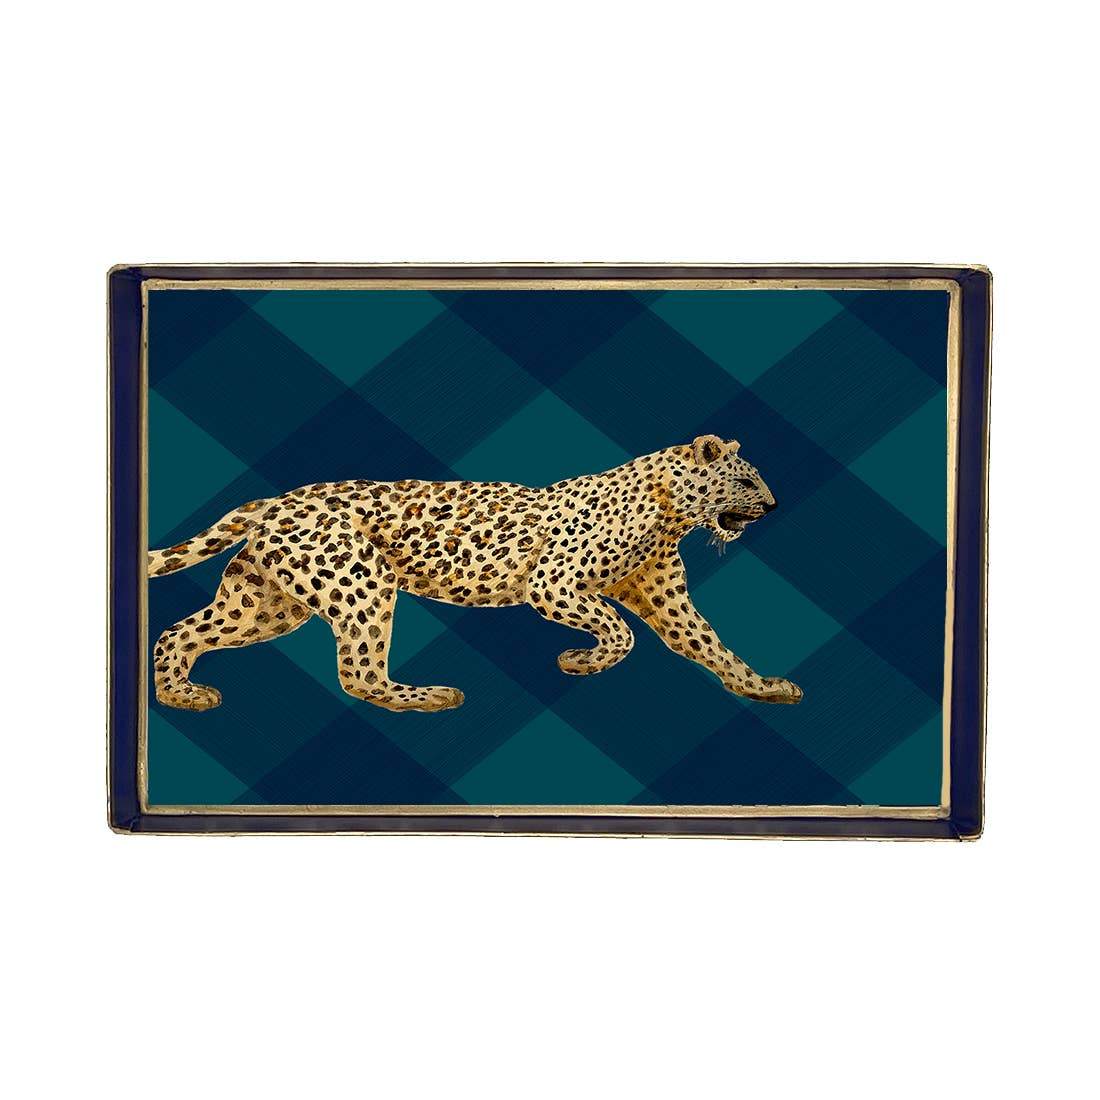 Sussex Plaid Leopard Enameled Oliver Tray 10x12